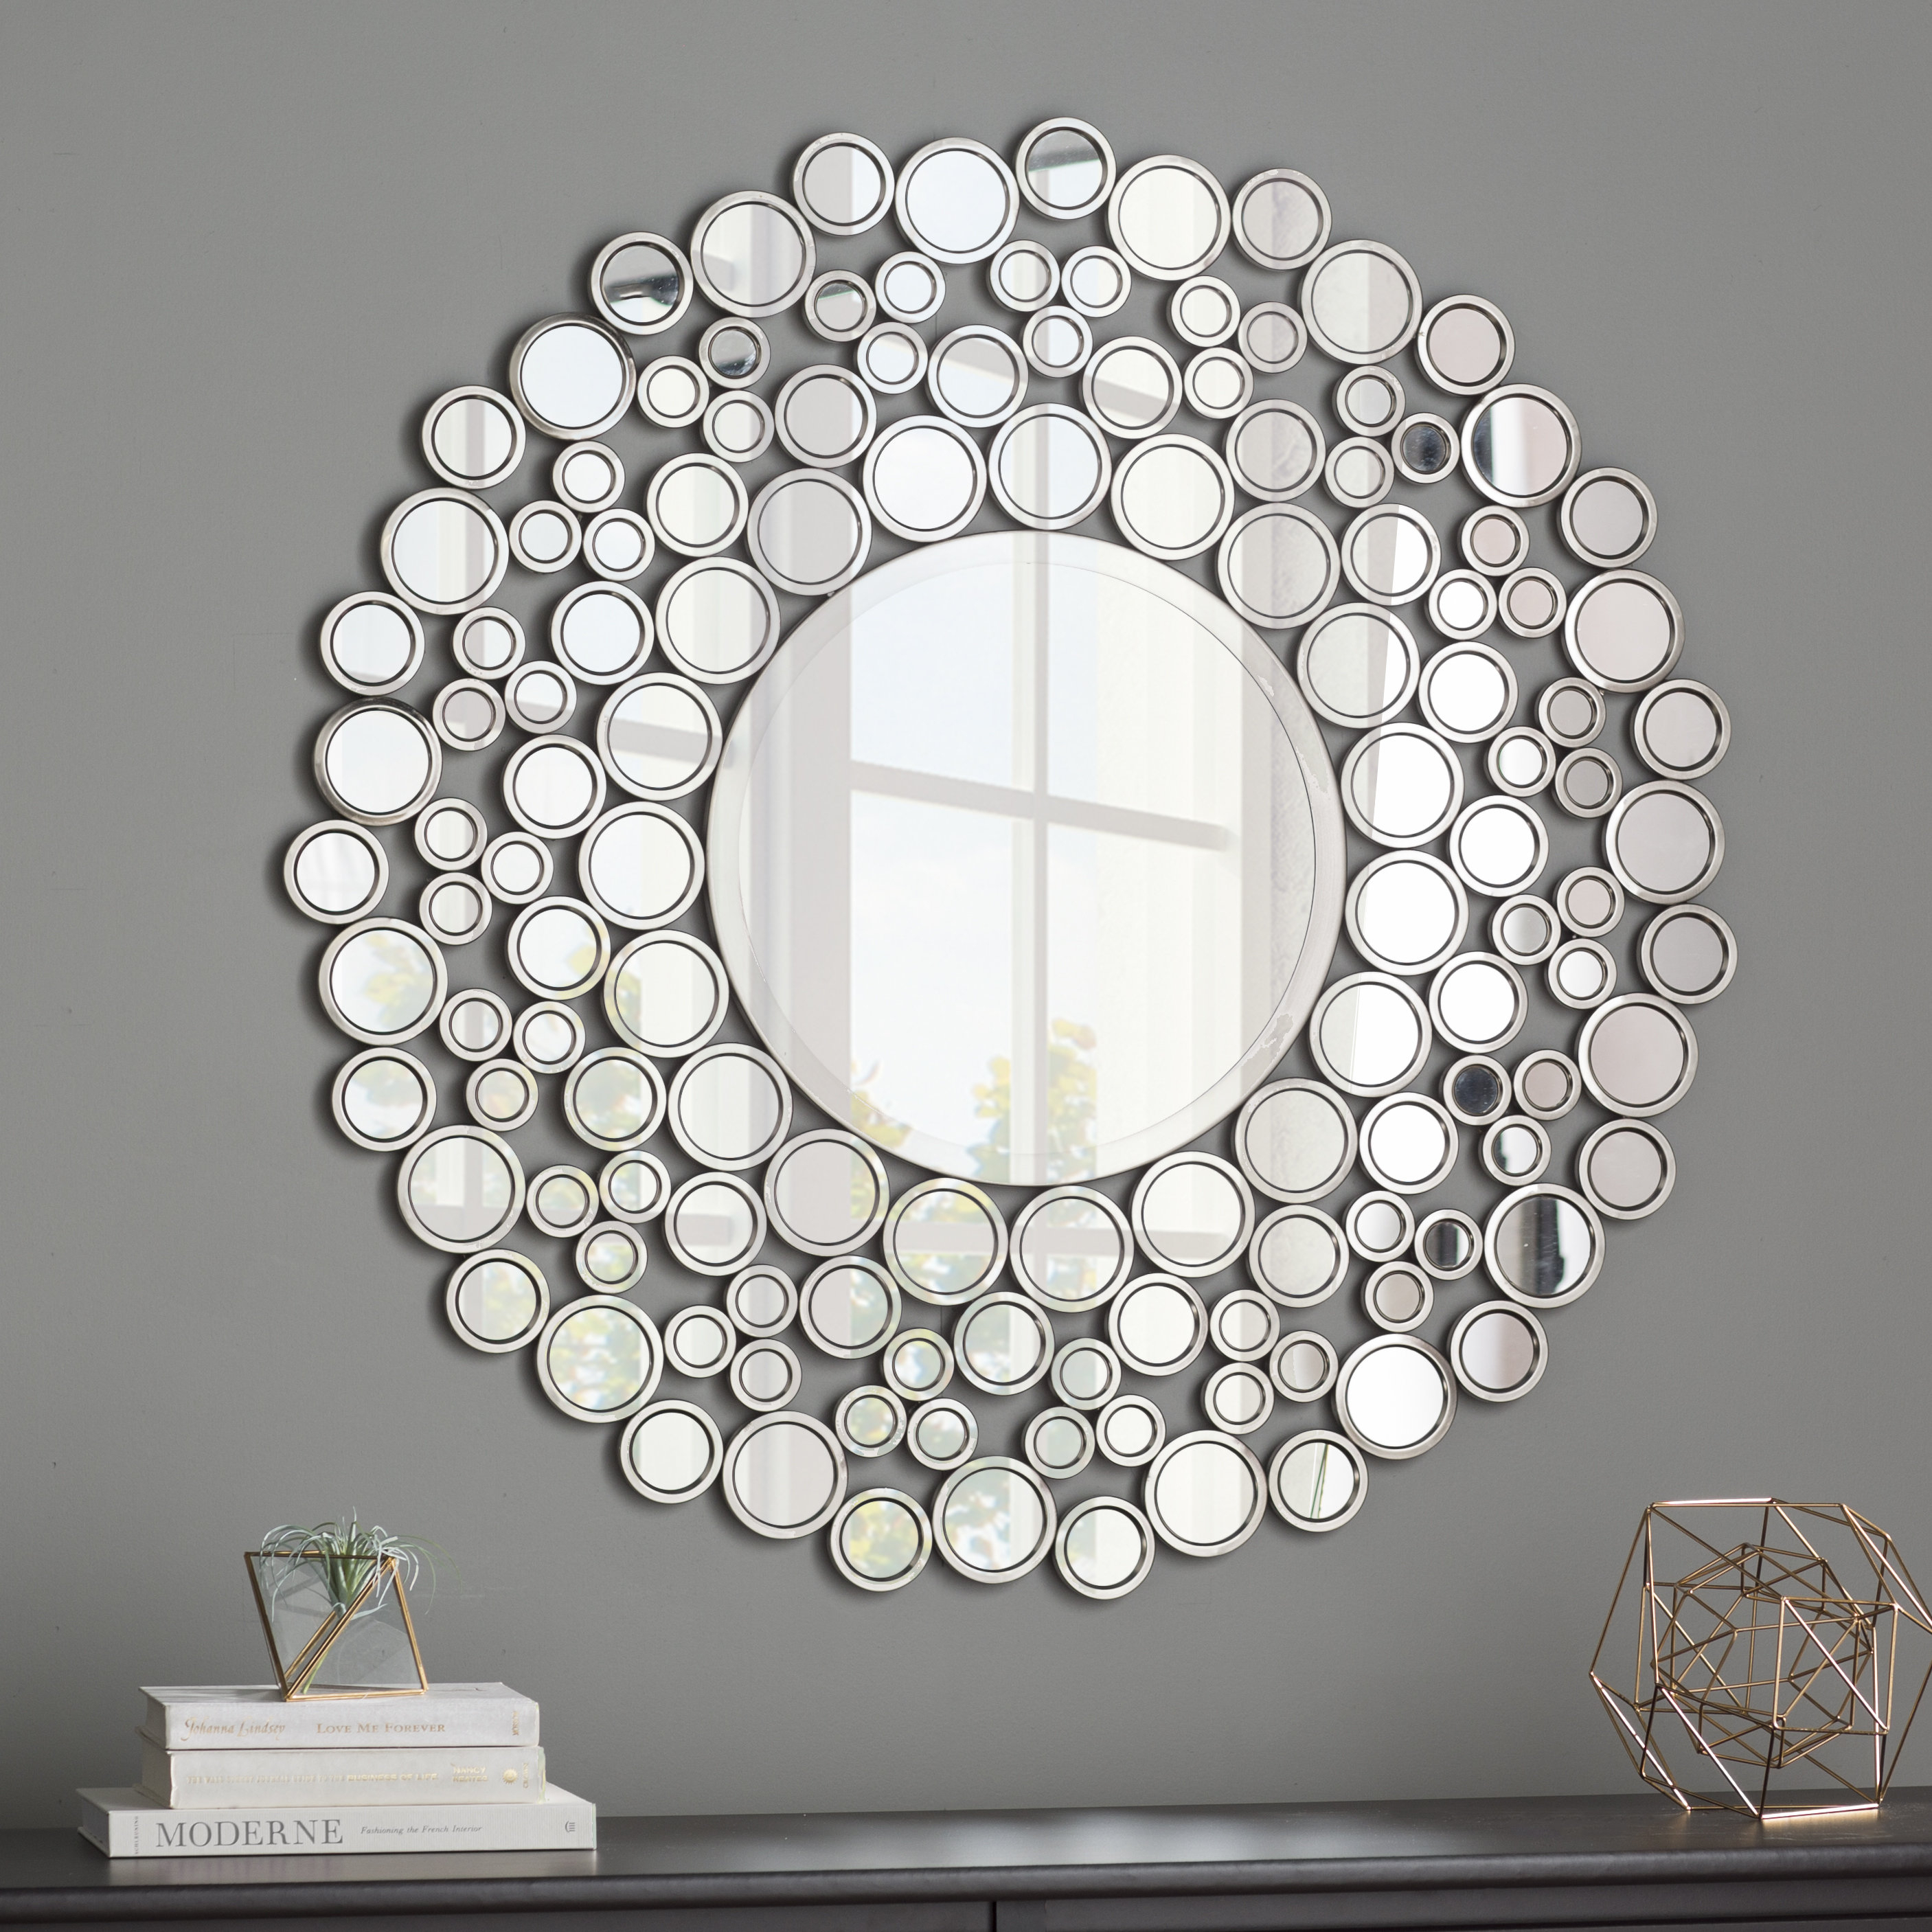 36 Inch Round Wall Mirror | Wayfair Regarding Tata Openwork Round Wall Mirrors (View 15 of 30)